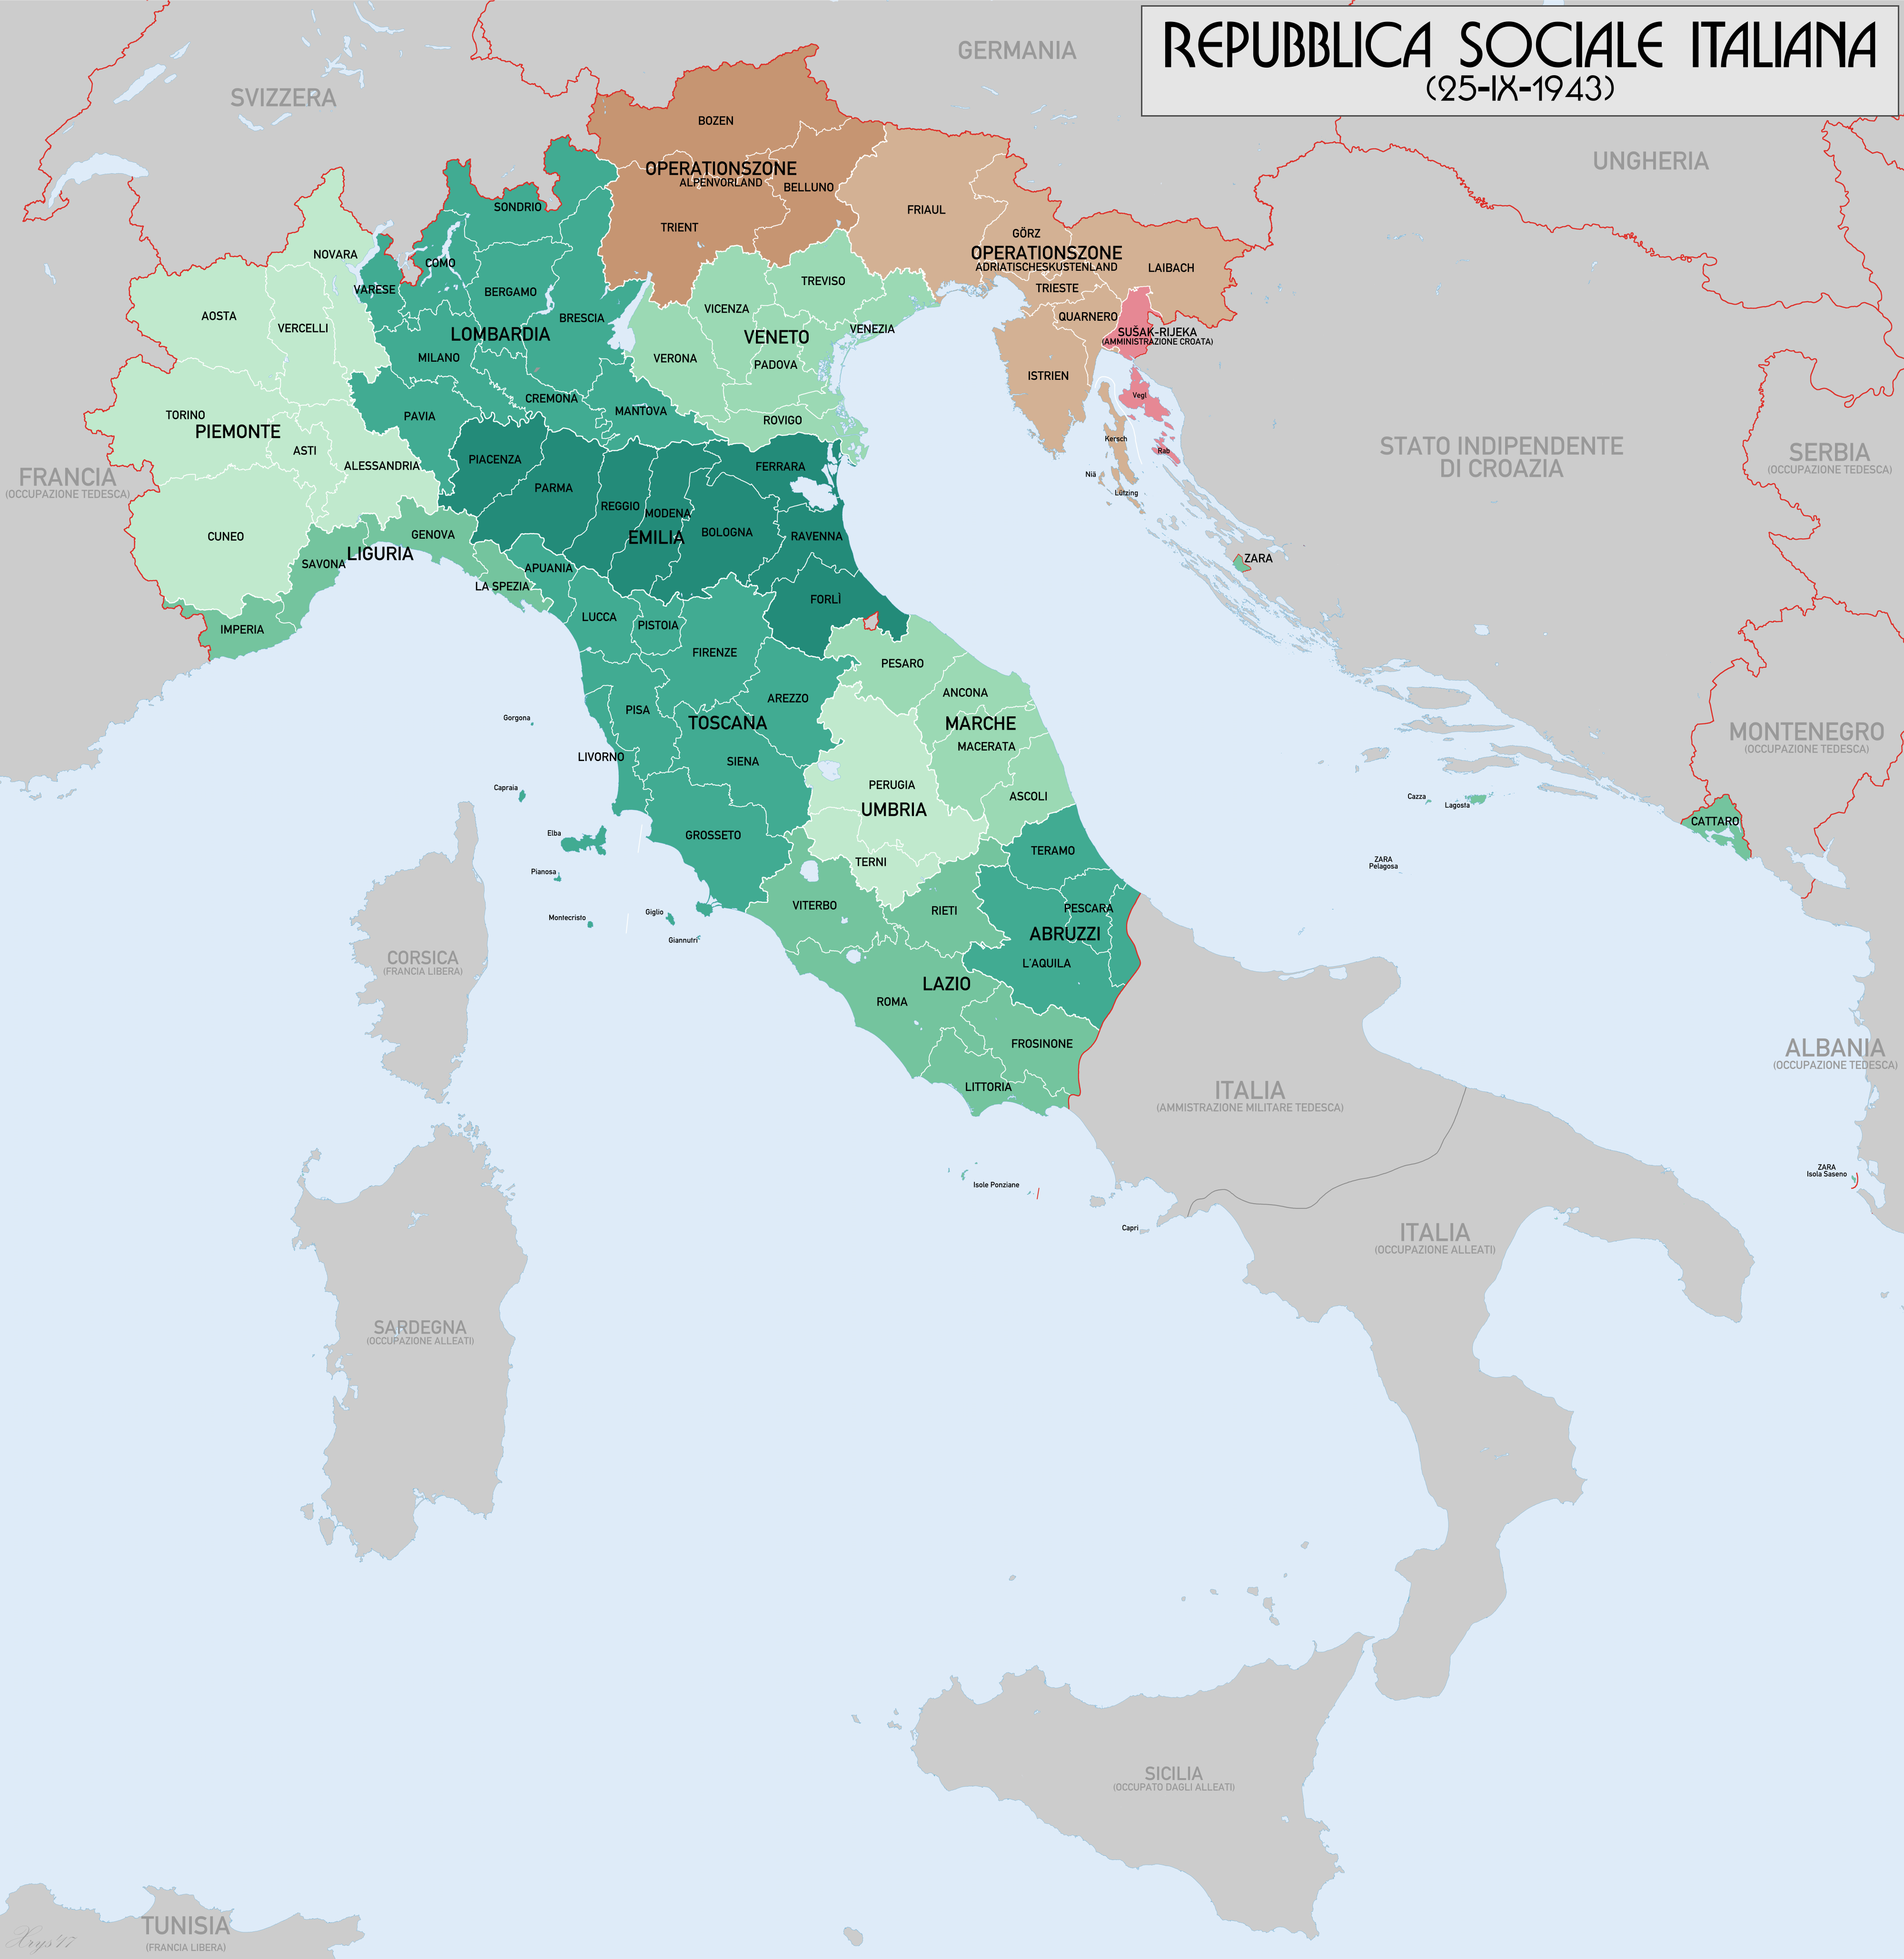 Pin by charles bauman on maps pinterest history historical maps historian germania wwii italia maps pink italy world war ii gumiabroncs Gallery